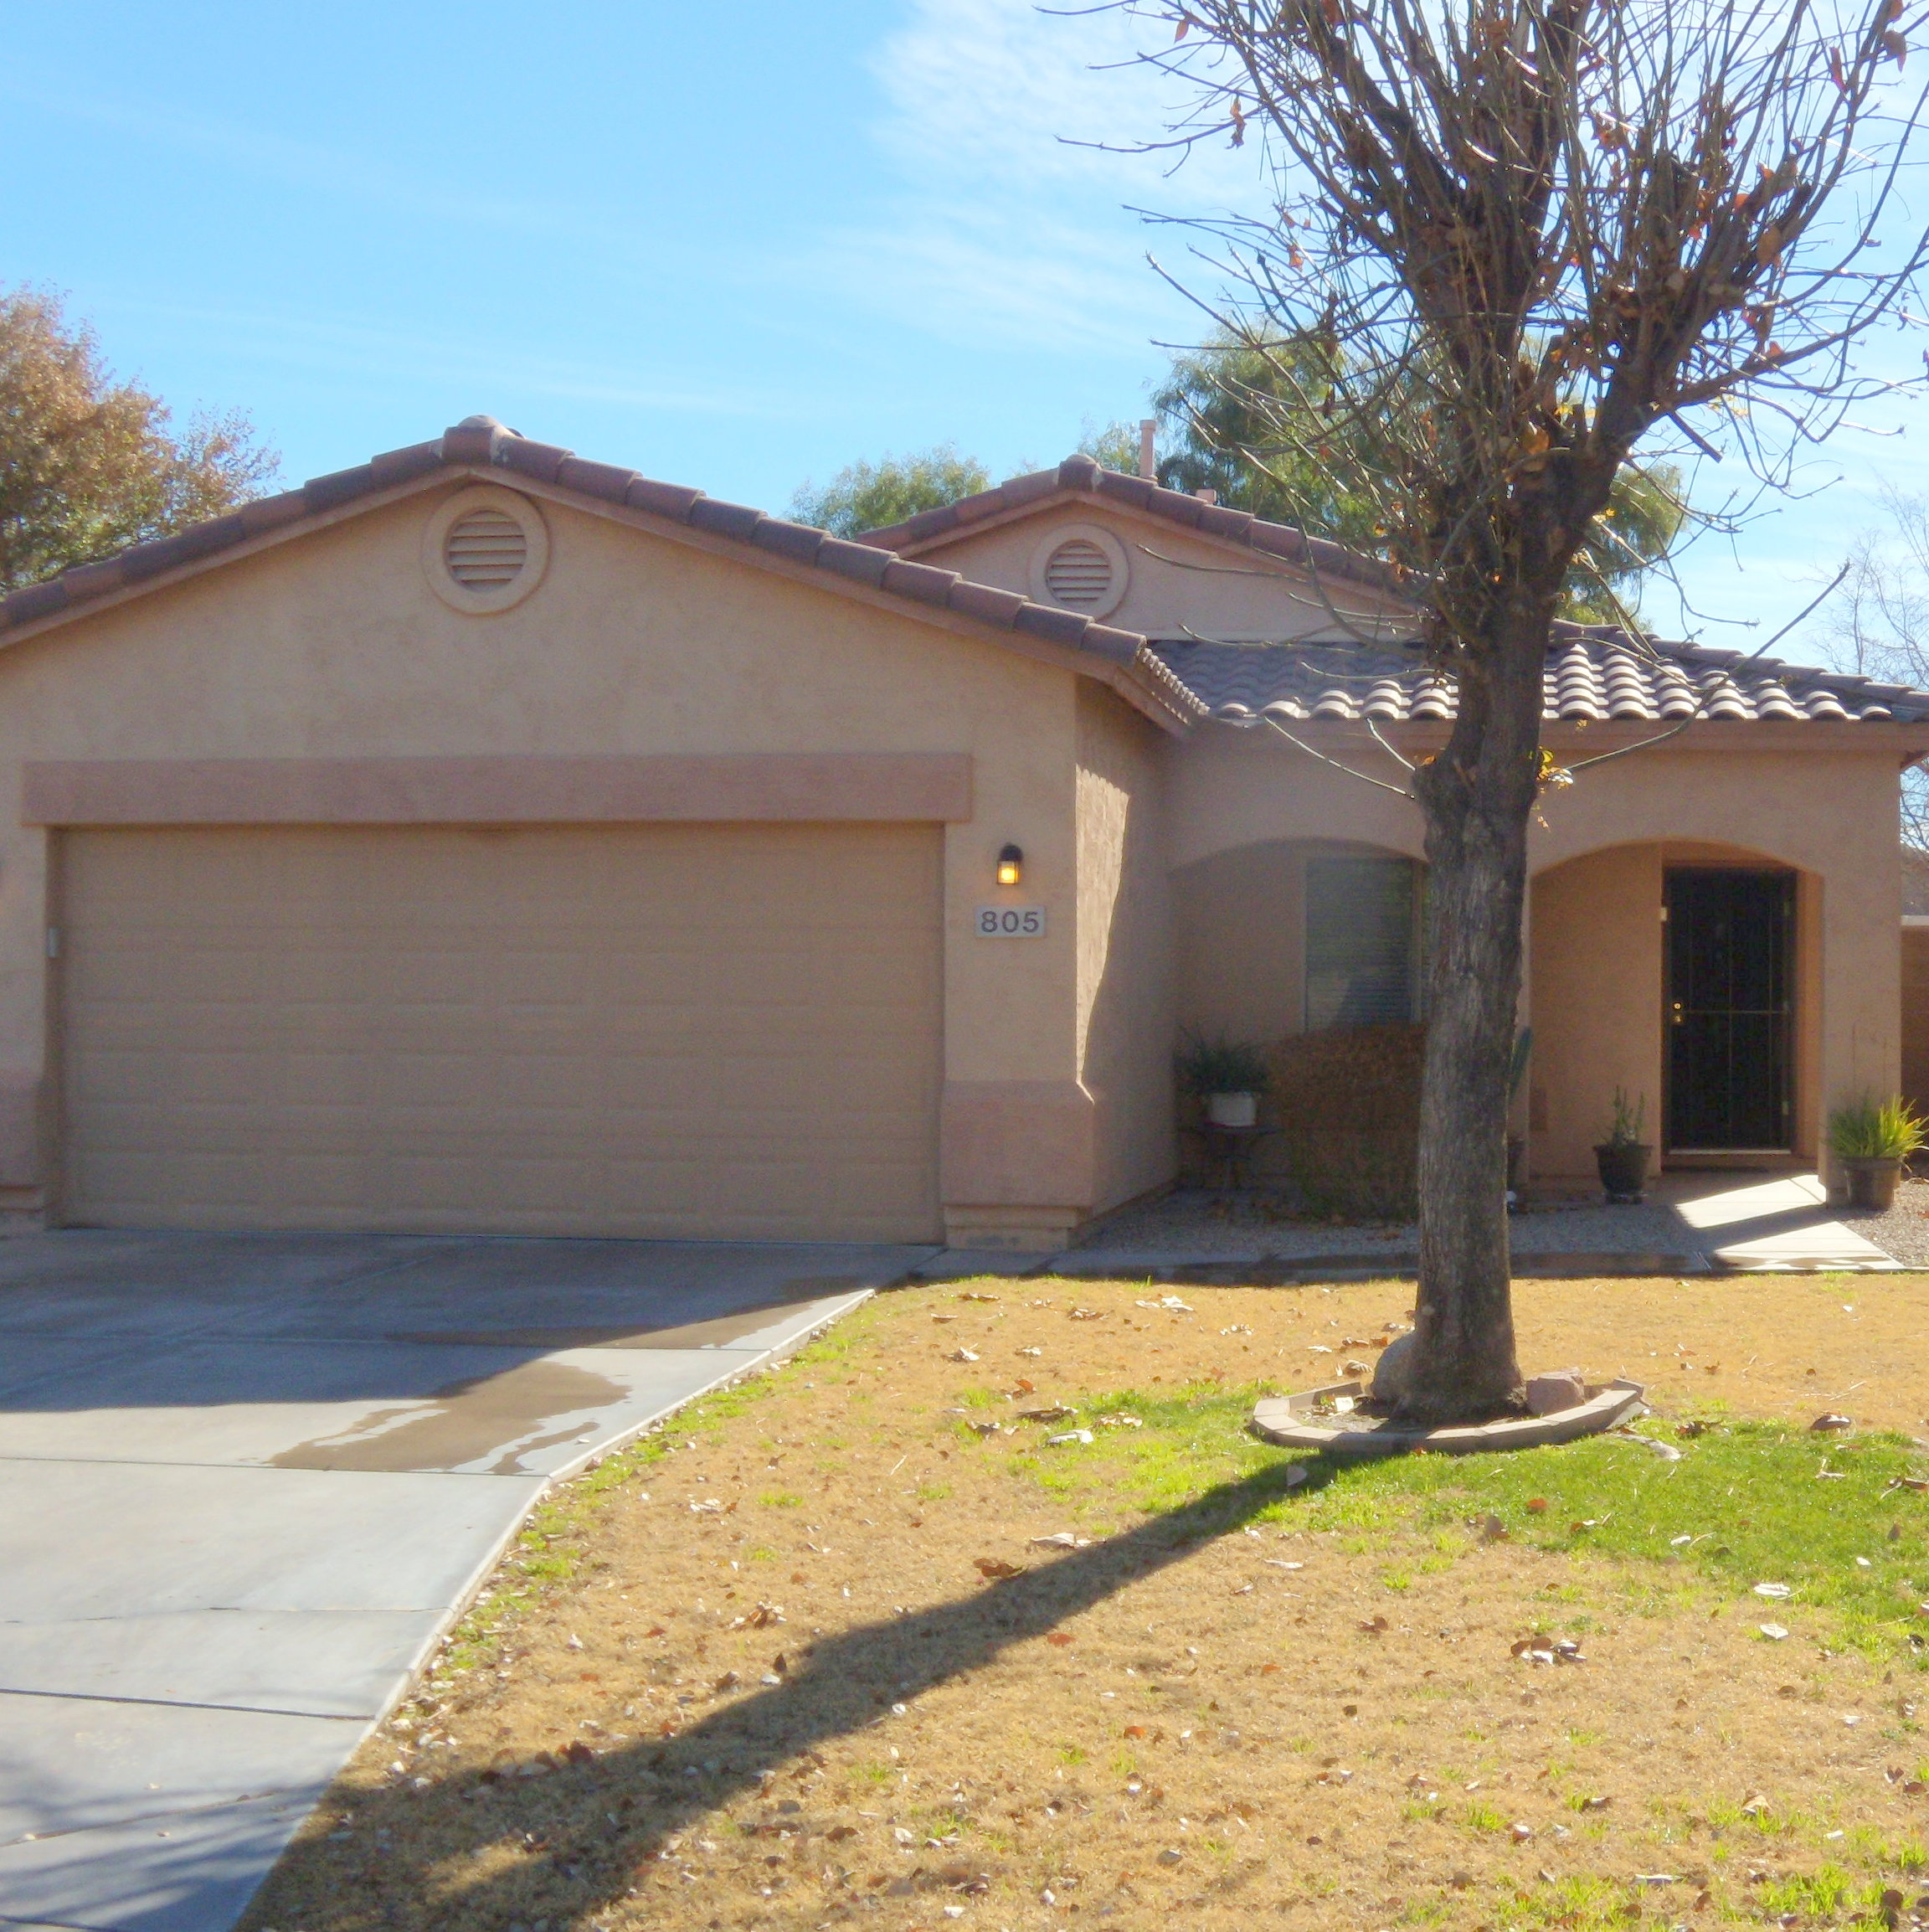 805 E Drifter Place,San Tan Valley,AZ